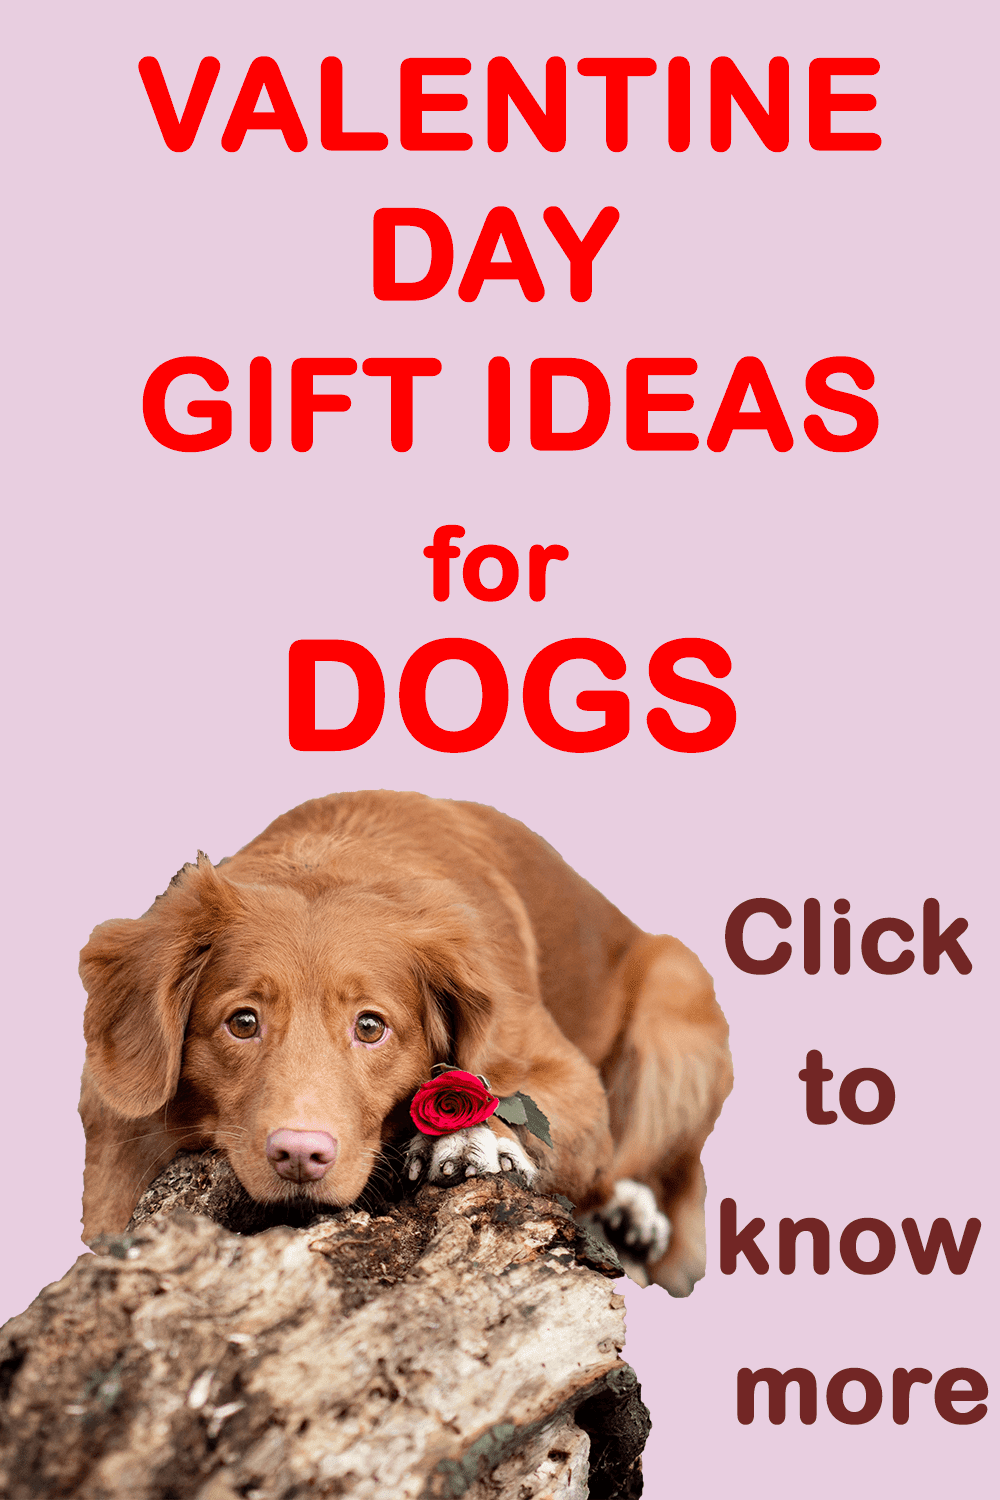 This valentine, make your dog's day extra special by involving and indulging him/her. Your dog loves you all the time every day. Make this special day his/her's too. Valentine gifts for dogs | Valentine day gifts | Valentine day for dogs | Valentine day celebration with dog | Best valentine day gift ideas for dogs